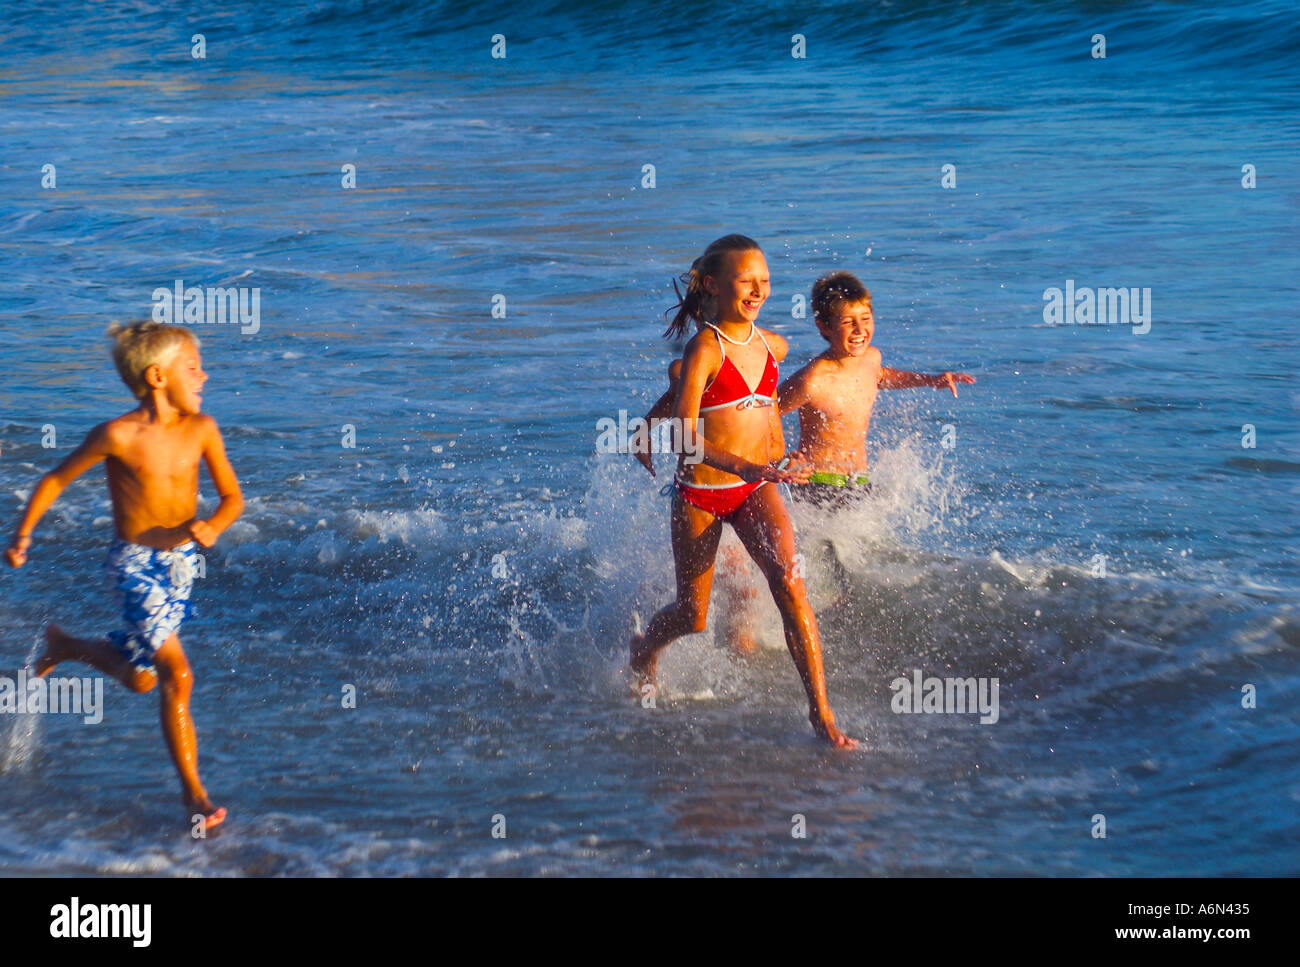 Kids Playing At The Beach Running In Water